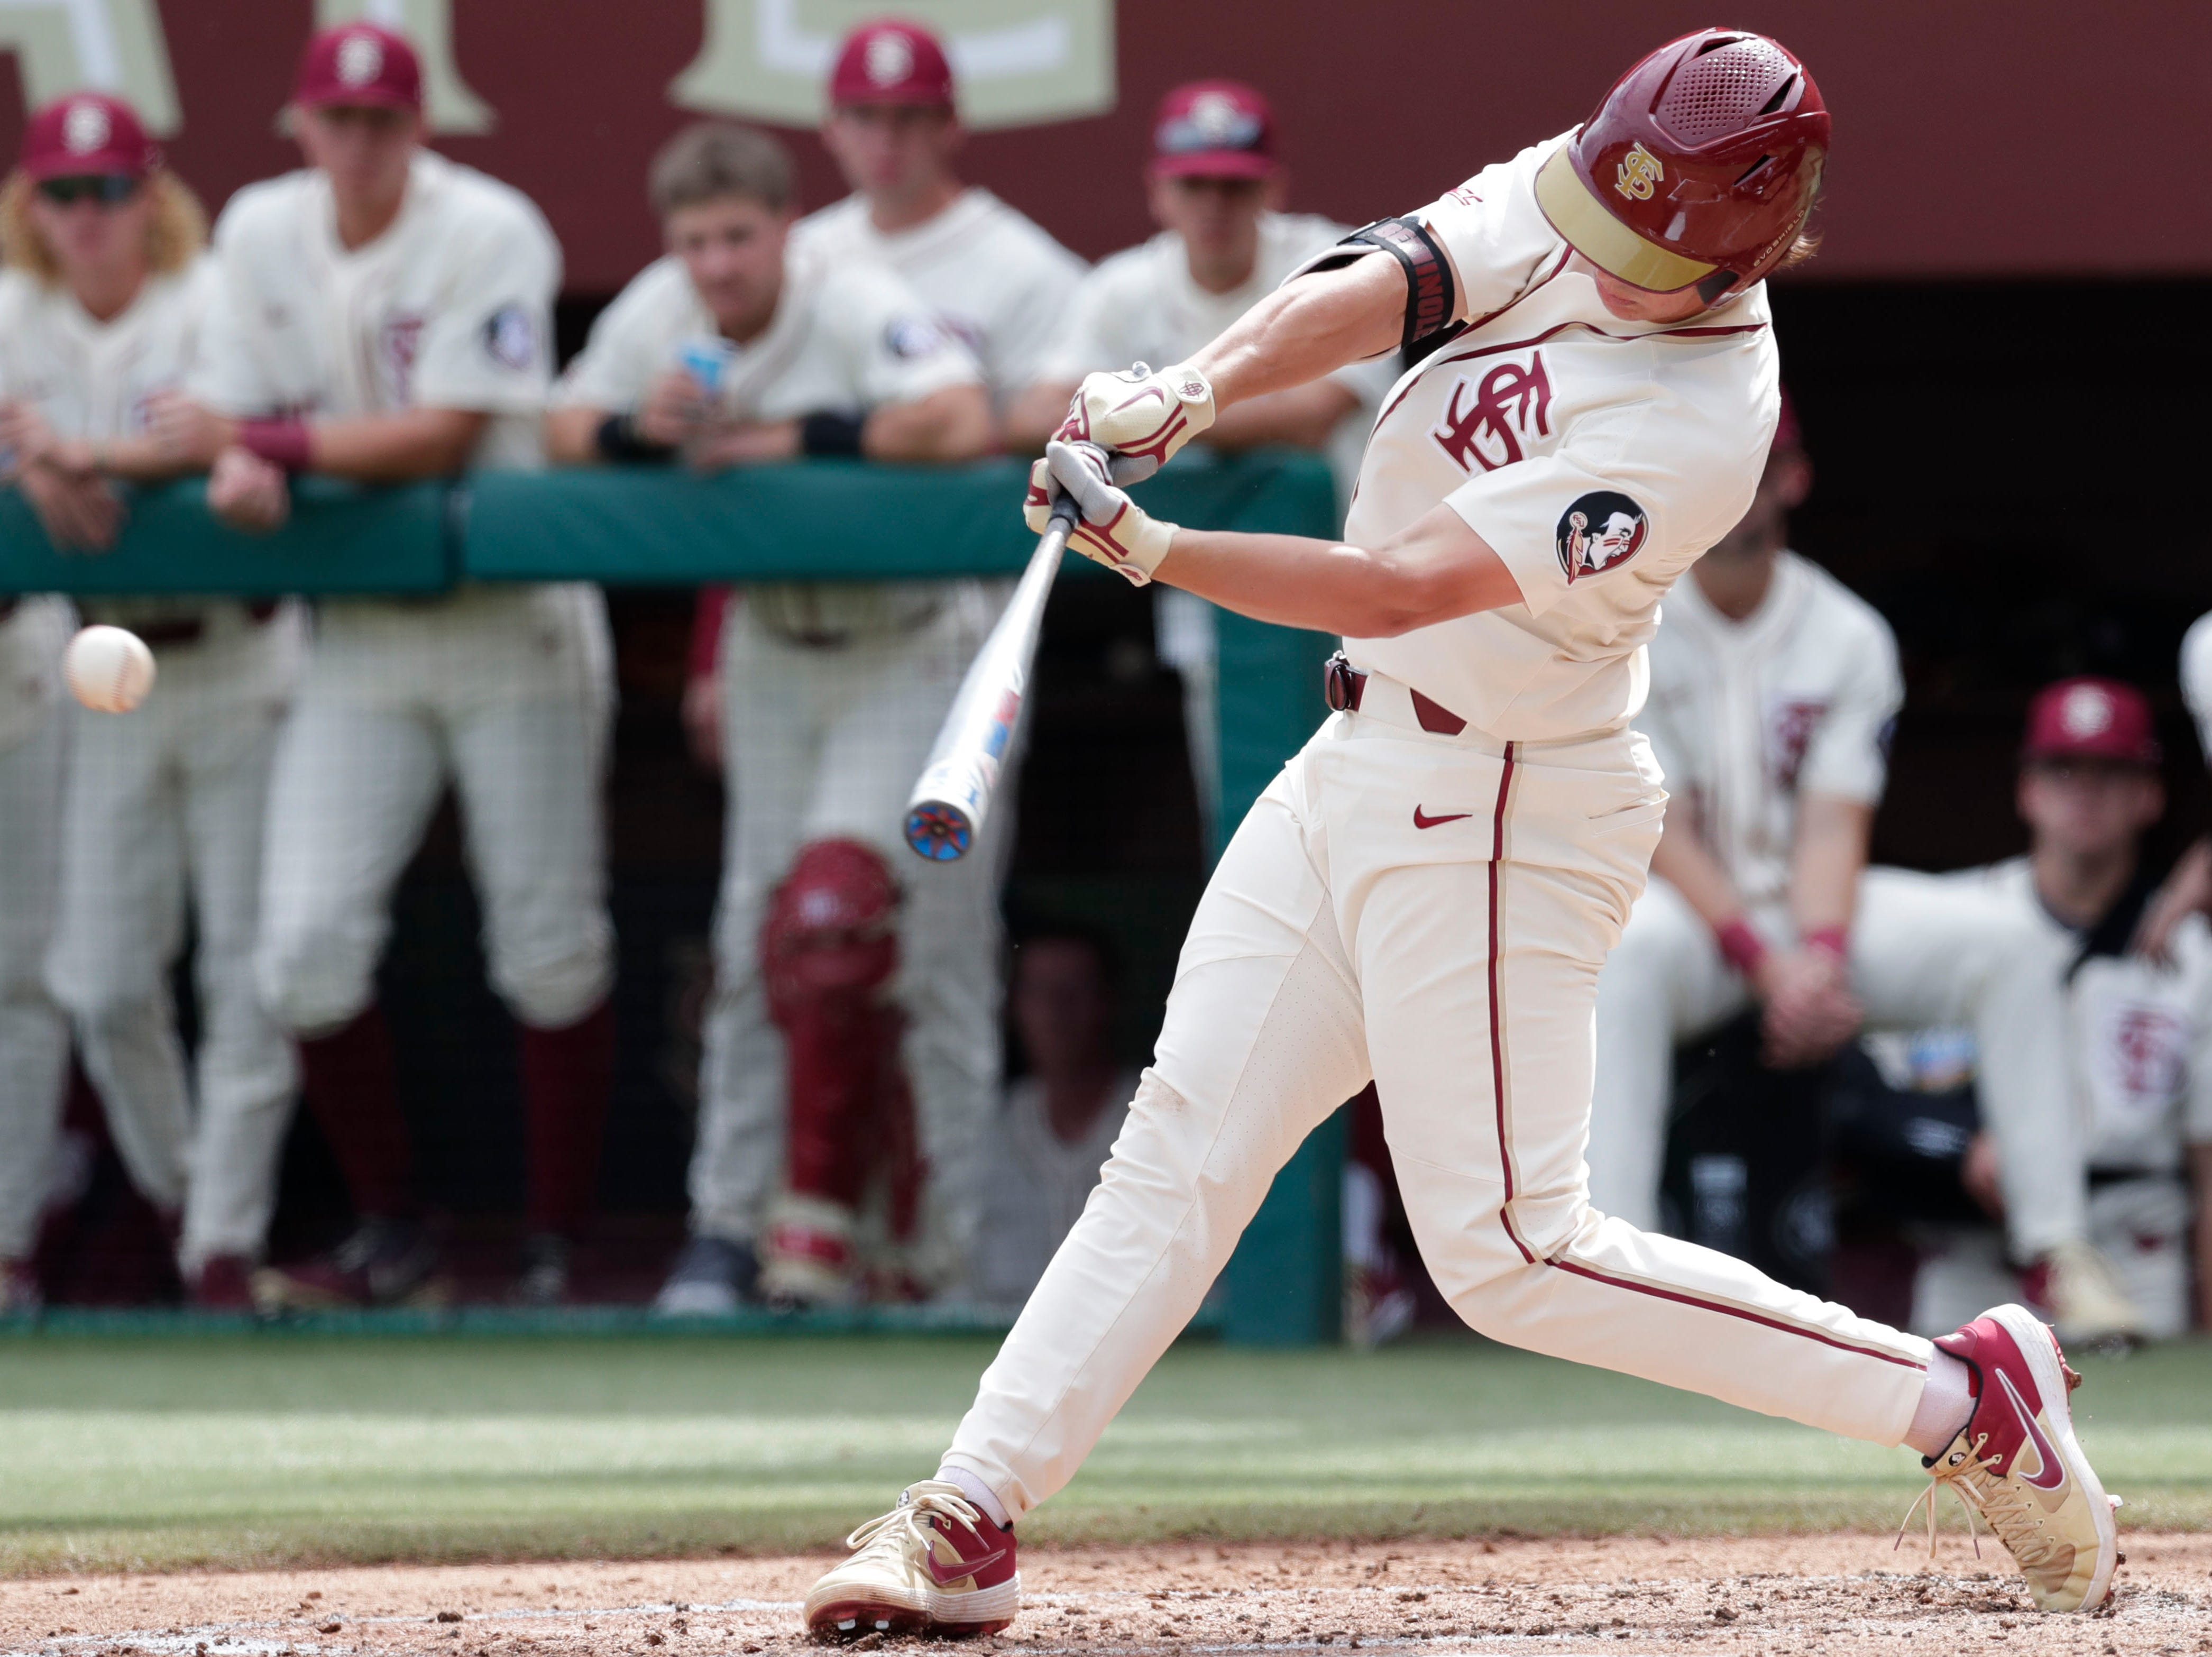 Florida State Seminole infielder Nico Baldor (51) makes contact with the ball as the Florida State Seminoles host the Maine Black Bears for the second game of the series, Saturday Feb. 16, 2019.